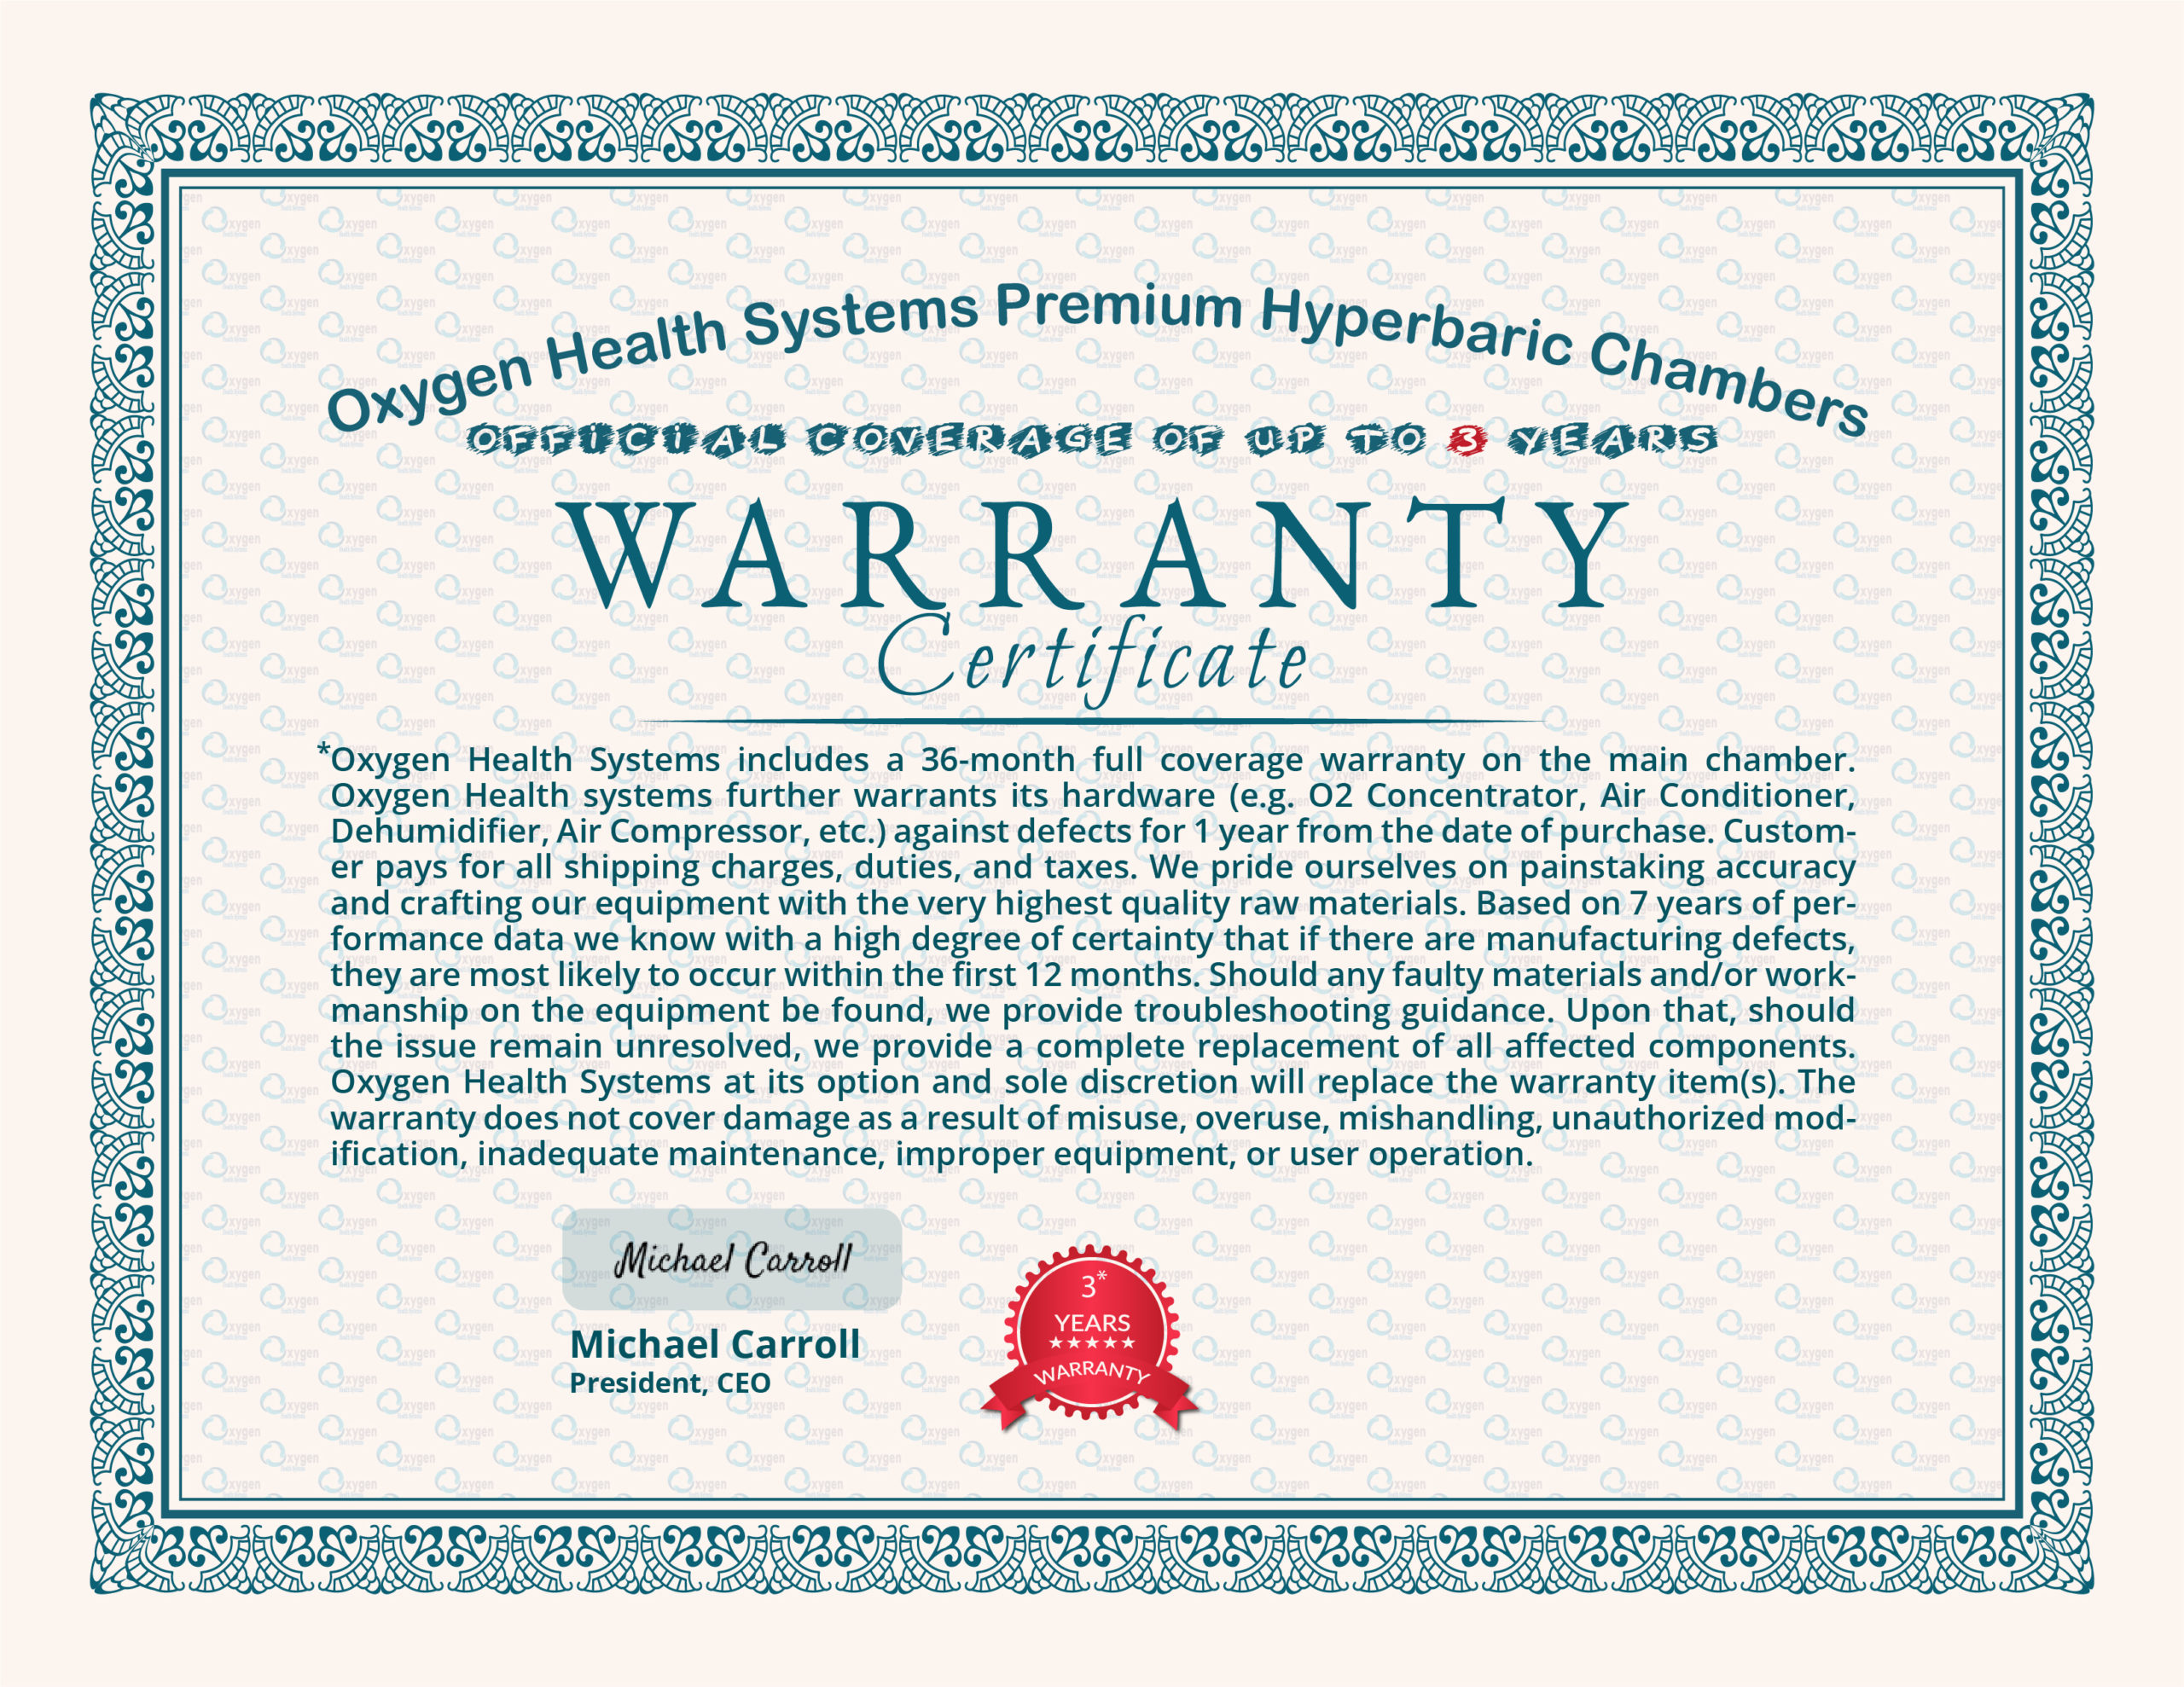 Warranty_Certificate Up to 3 Years